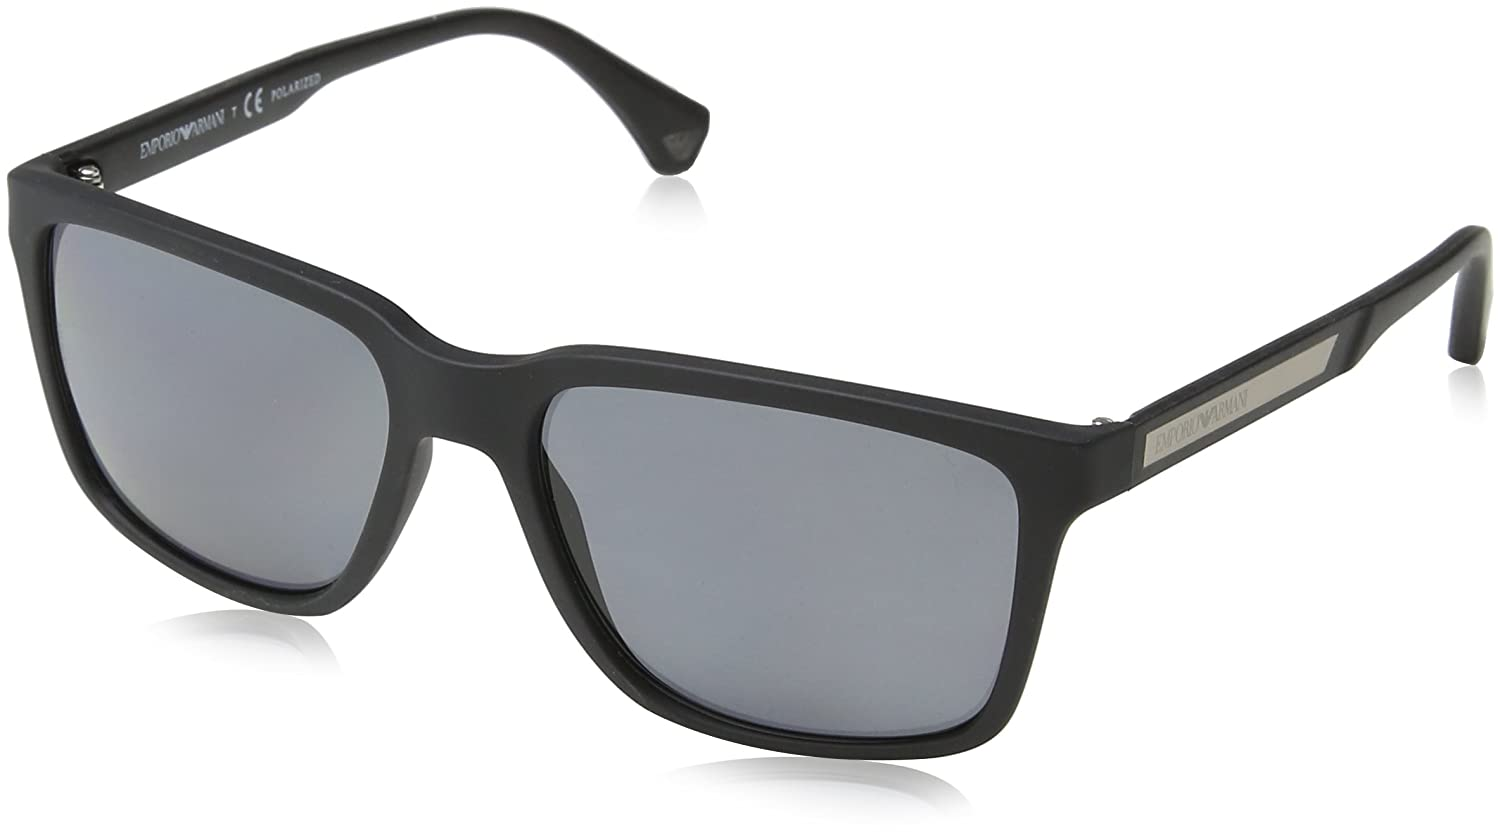 Amazon.com  Emporio Armani EA4047 506381 Black Rubber Grey Polarized  Sunglasses   Emporio Armani  Shoes 9dfb2a8c18